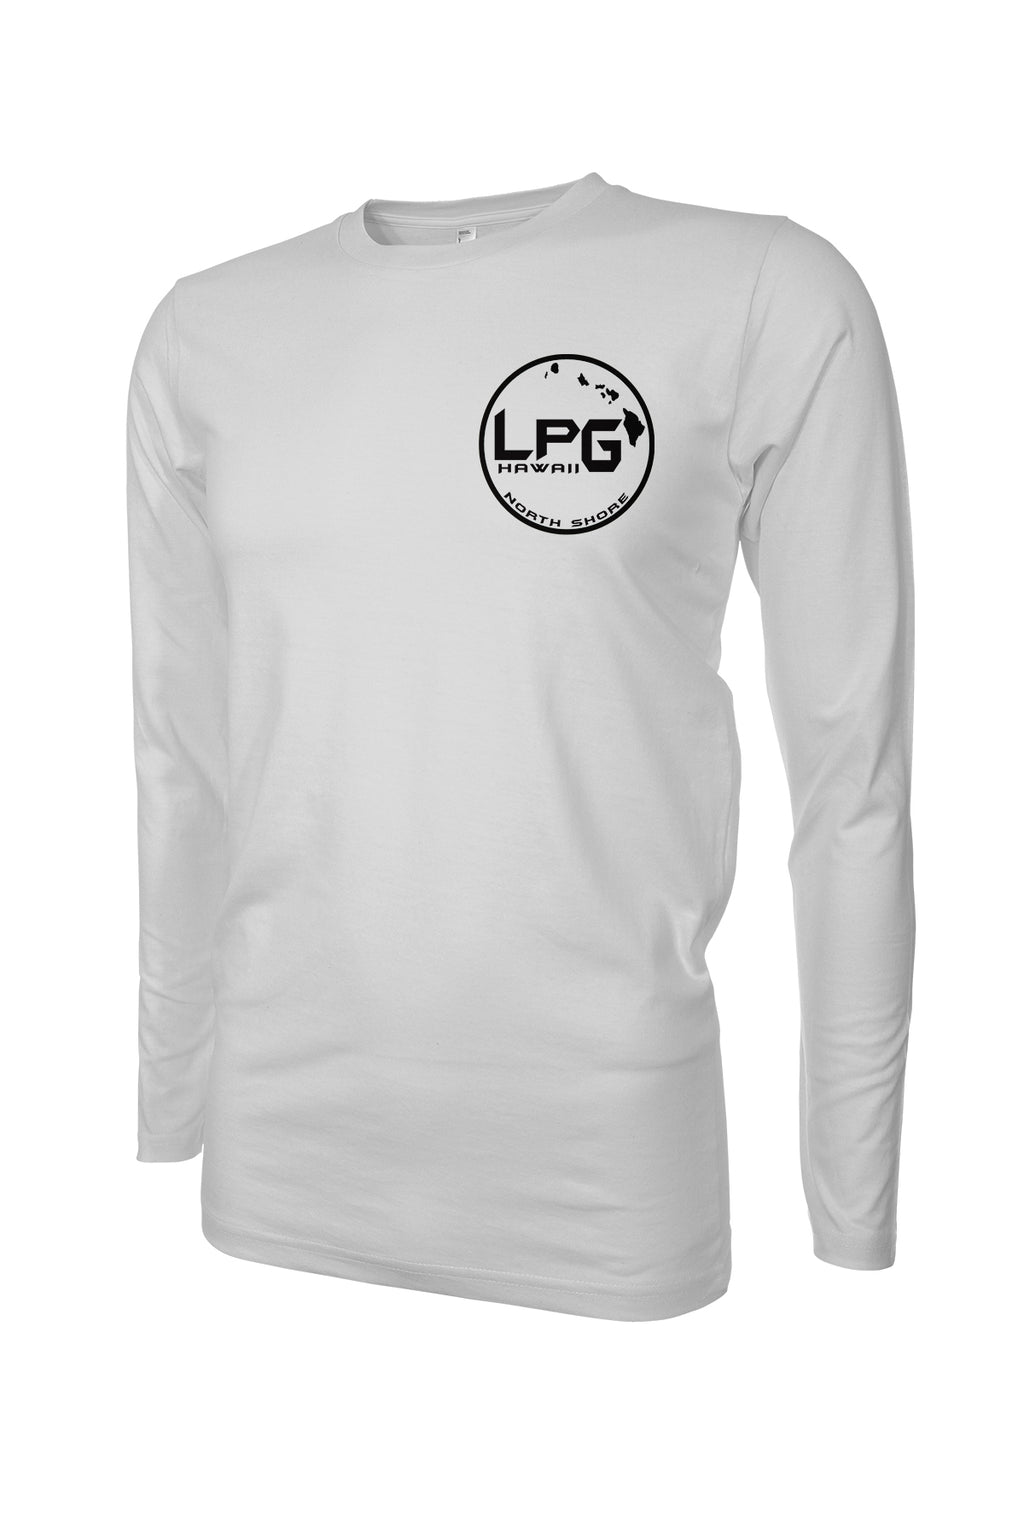 LPG Apparel Co. Hawaii North Shore Surf UPF 50+ Rashguard Performance Shirt